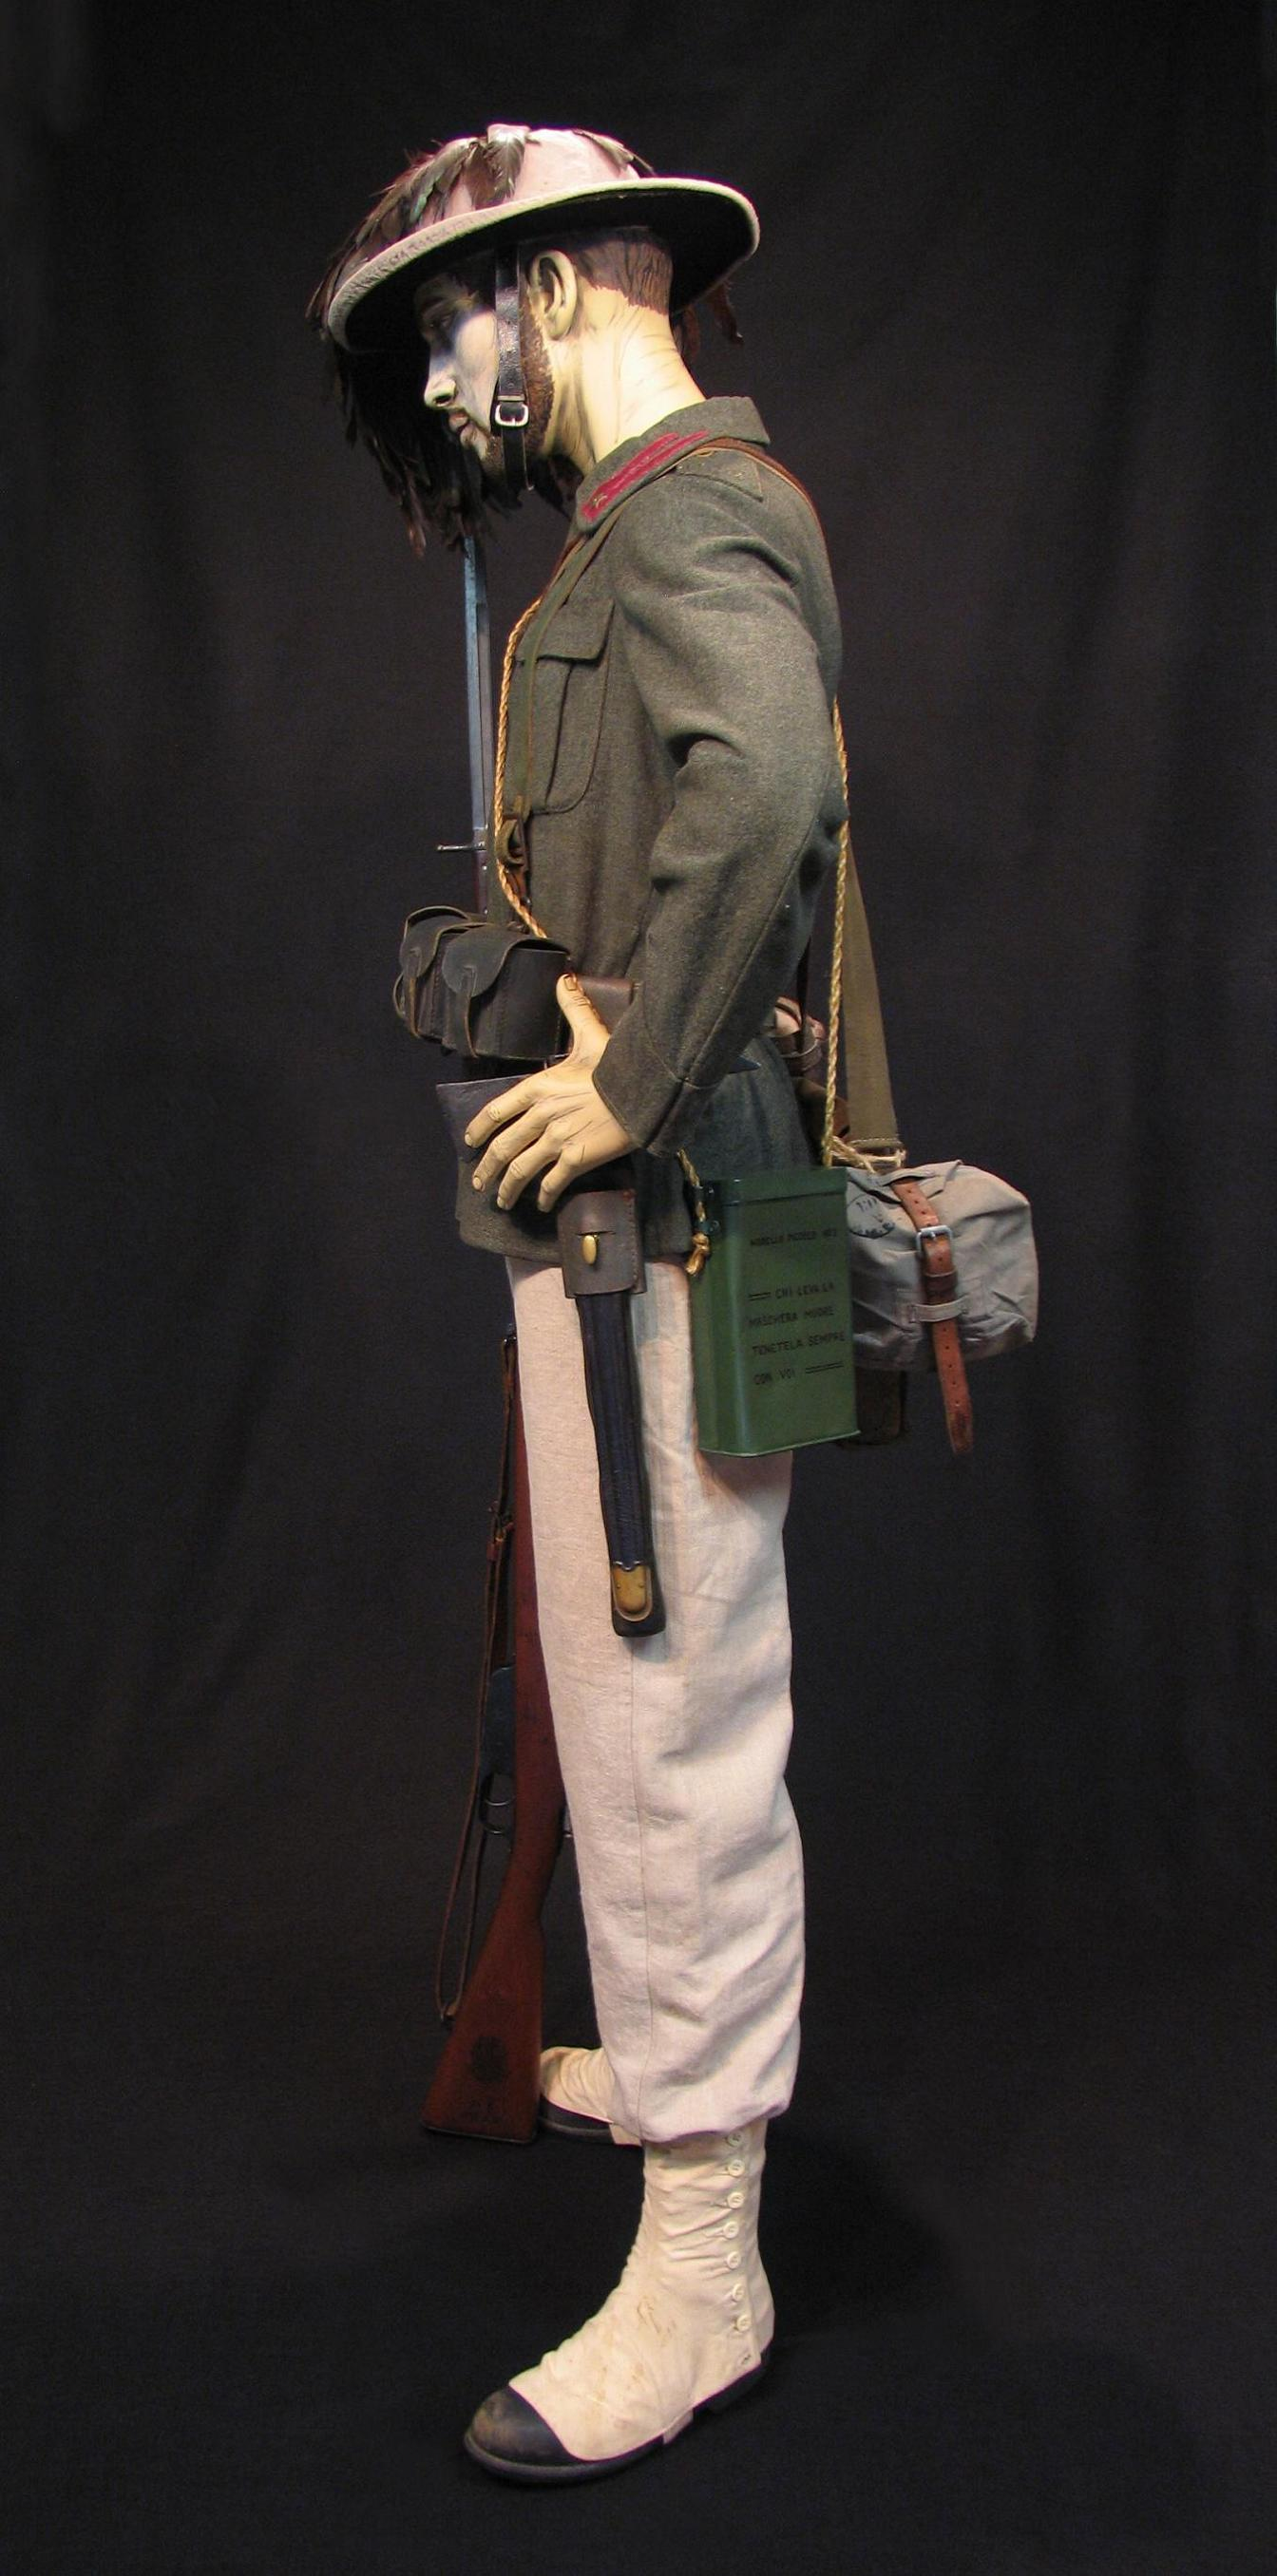 Bersaglieri Display w-o Cloak c1915-16 009-R.JPG